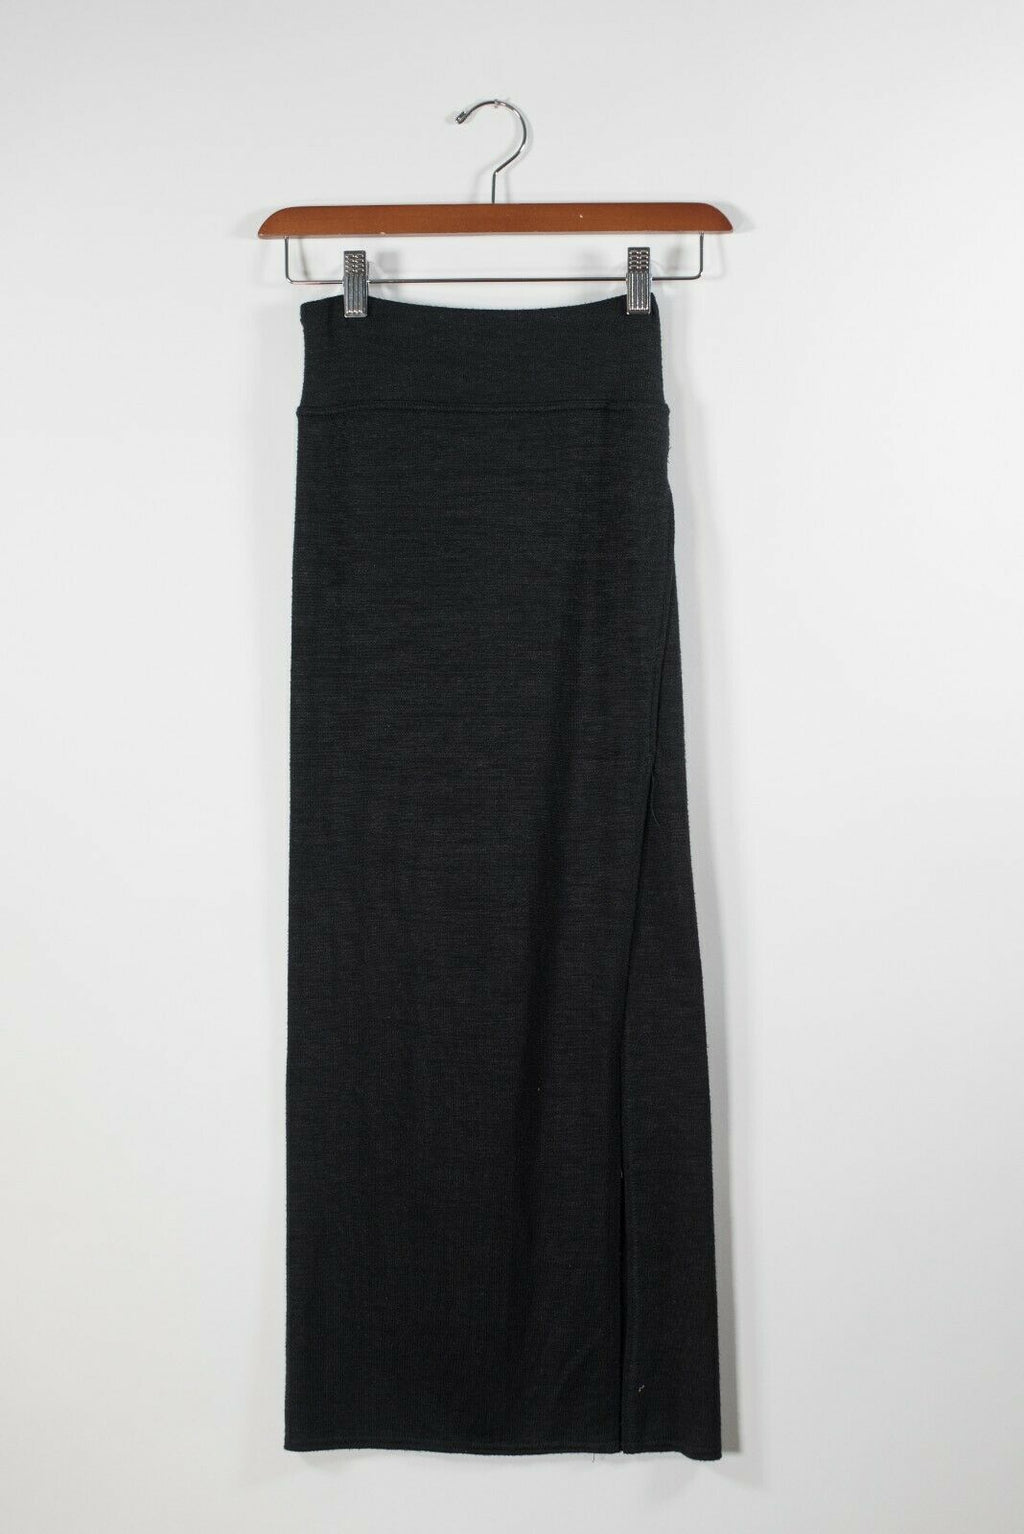 Aritzia Wilfred Free Womens XXS Black Skirt Side Slit Midi Knit Elastic Waist